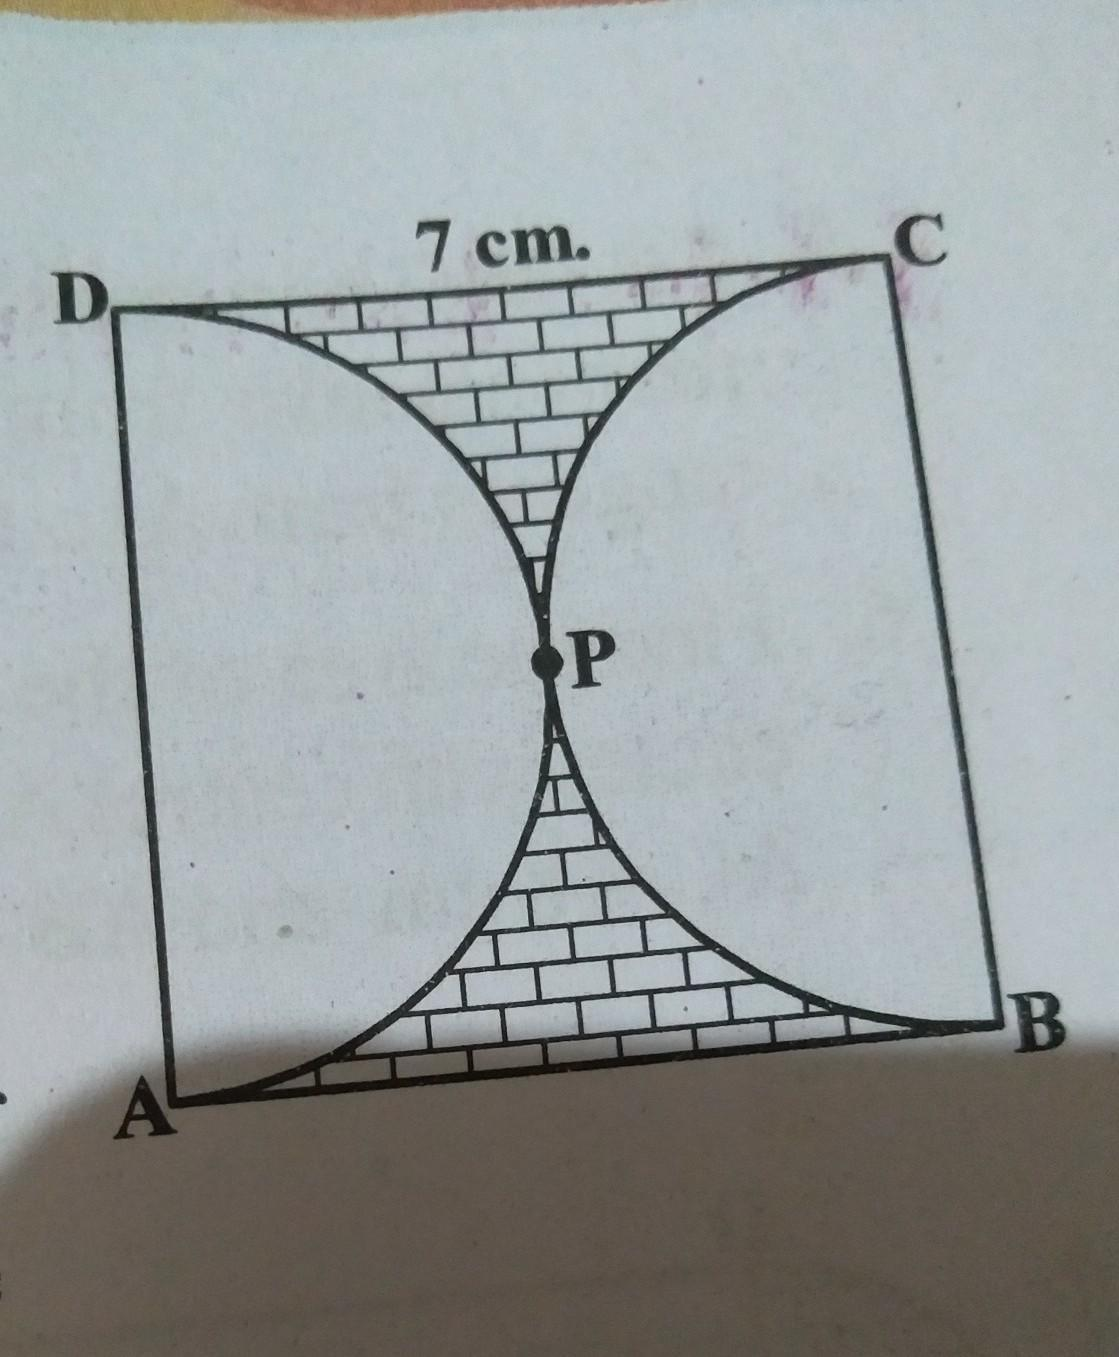 Find The Area Of The Shaded Region In Figure If Abcd Is A